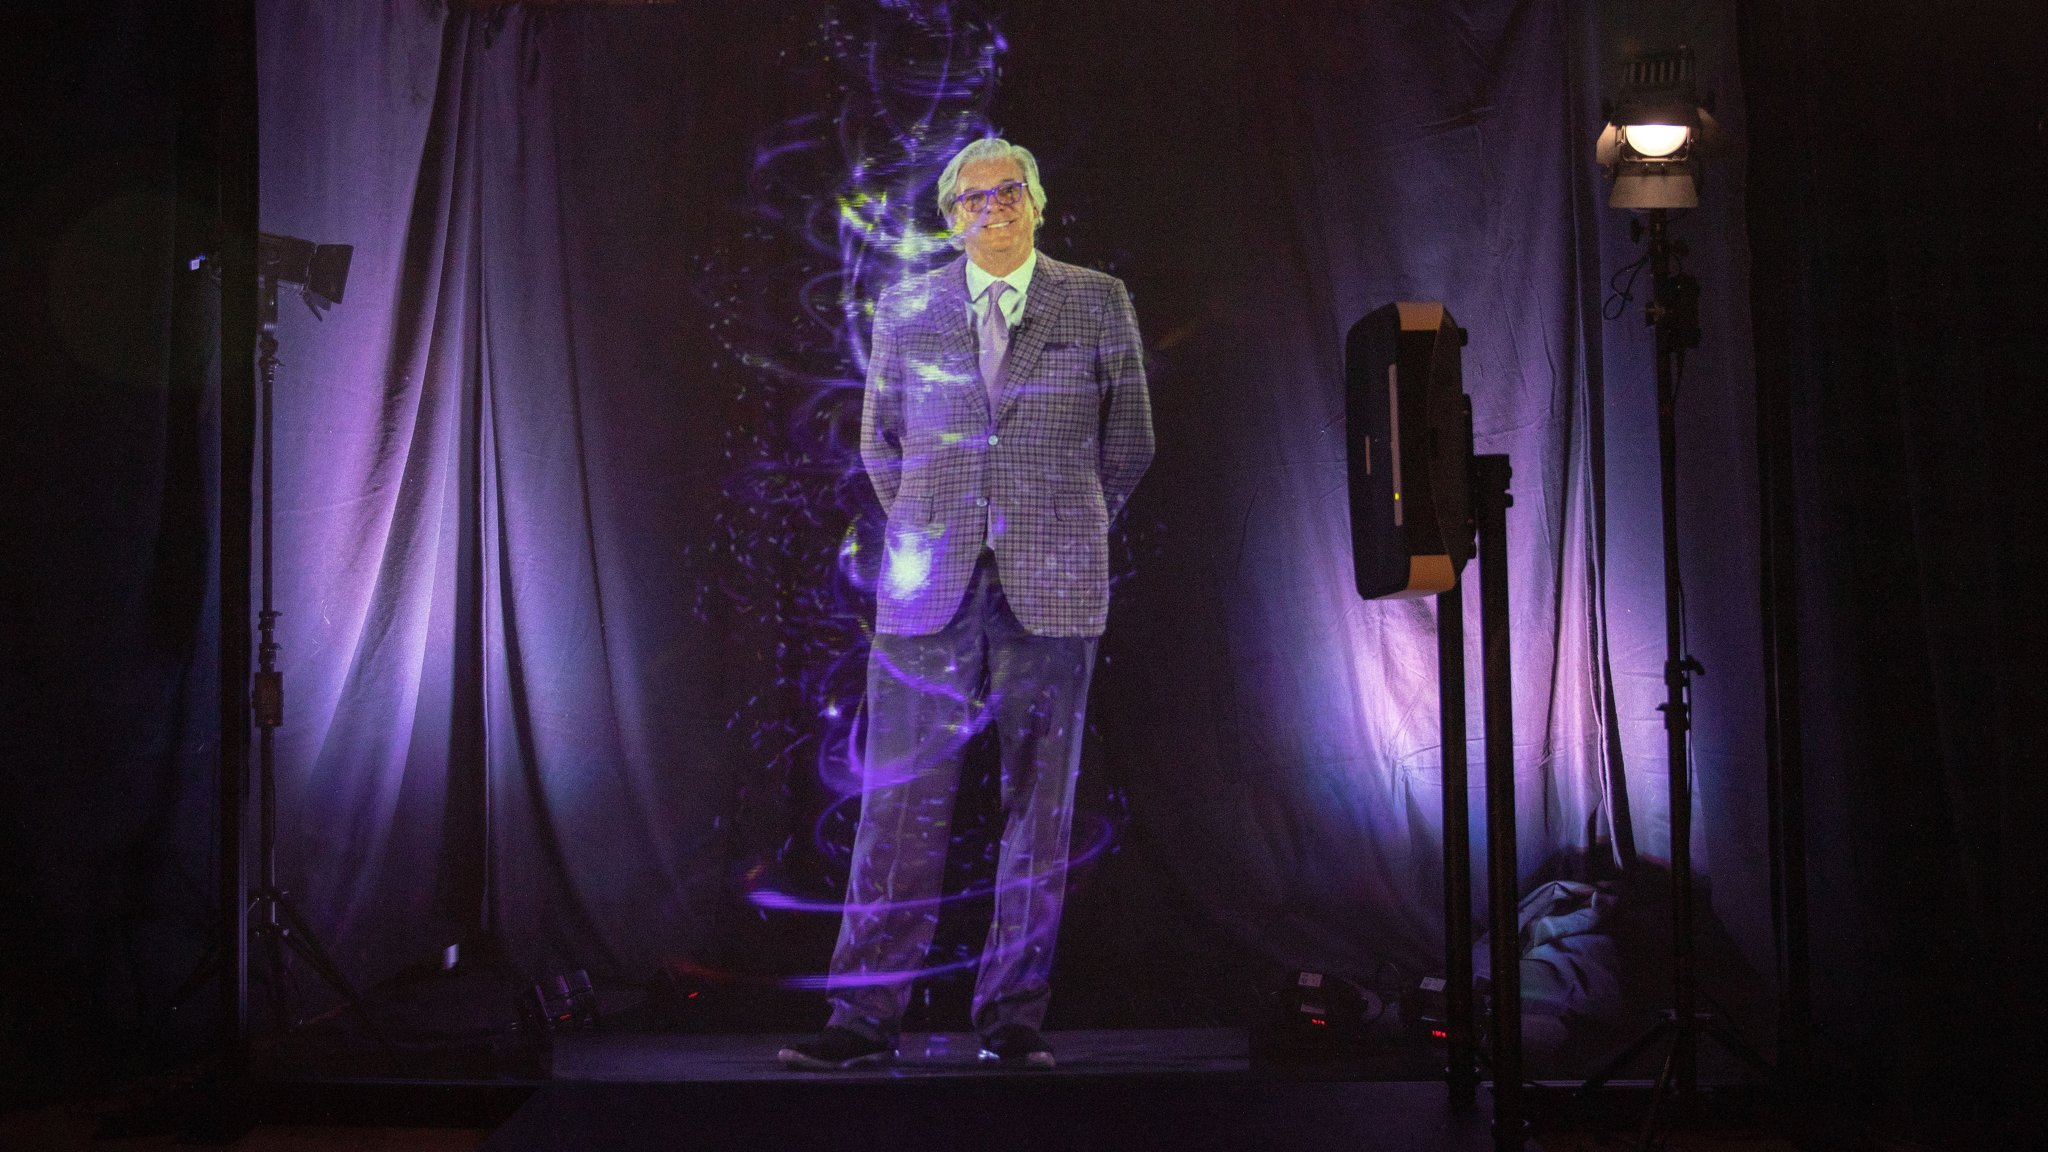 MBA students to be offered hologram lectures | Financial Times